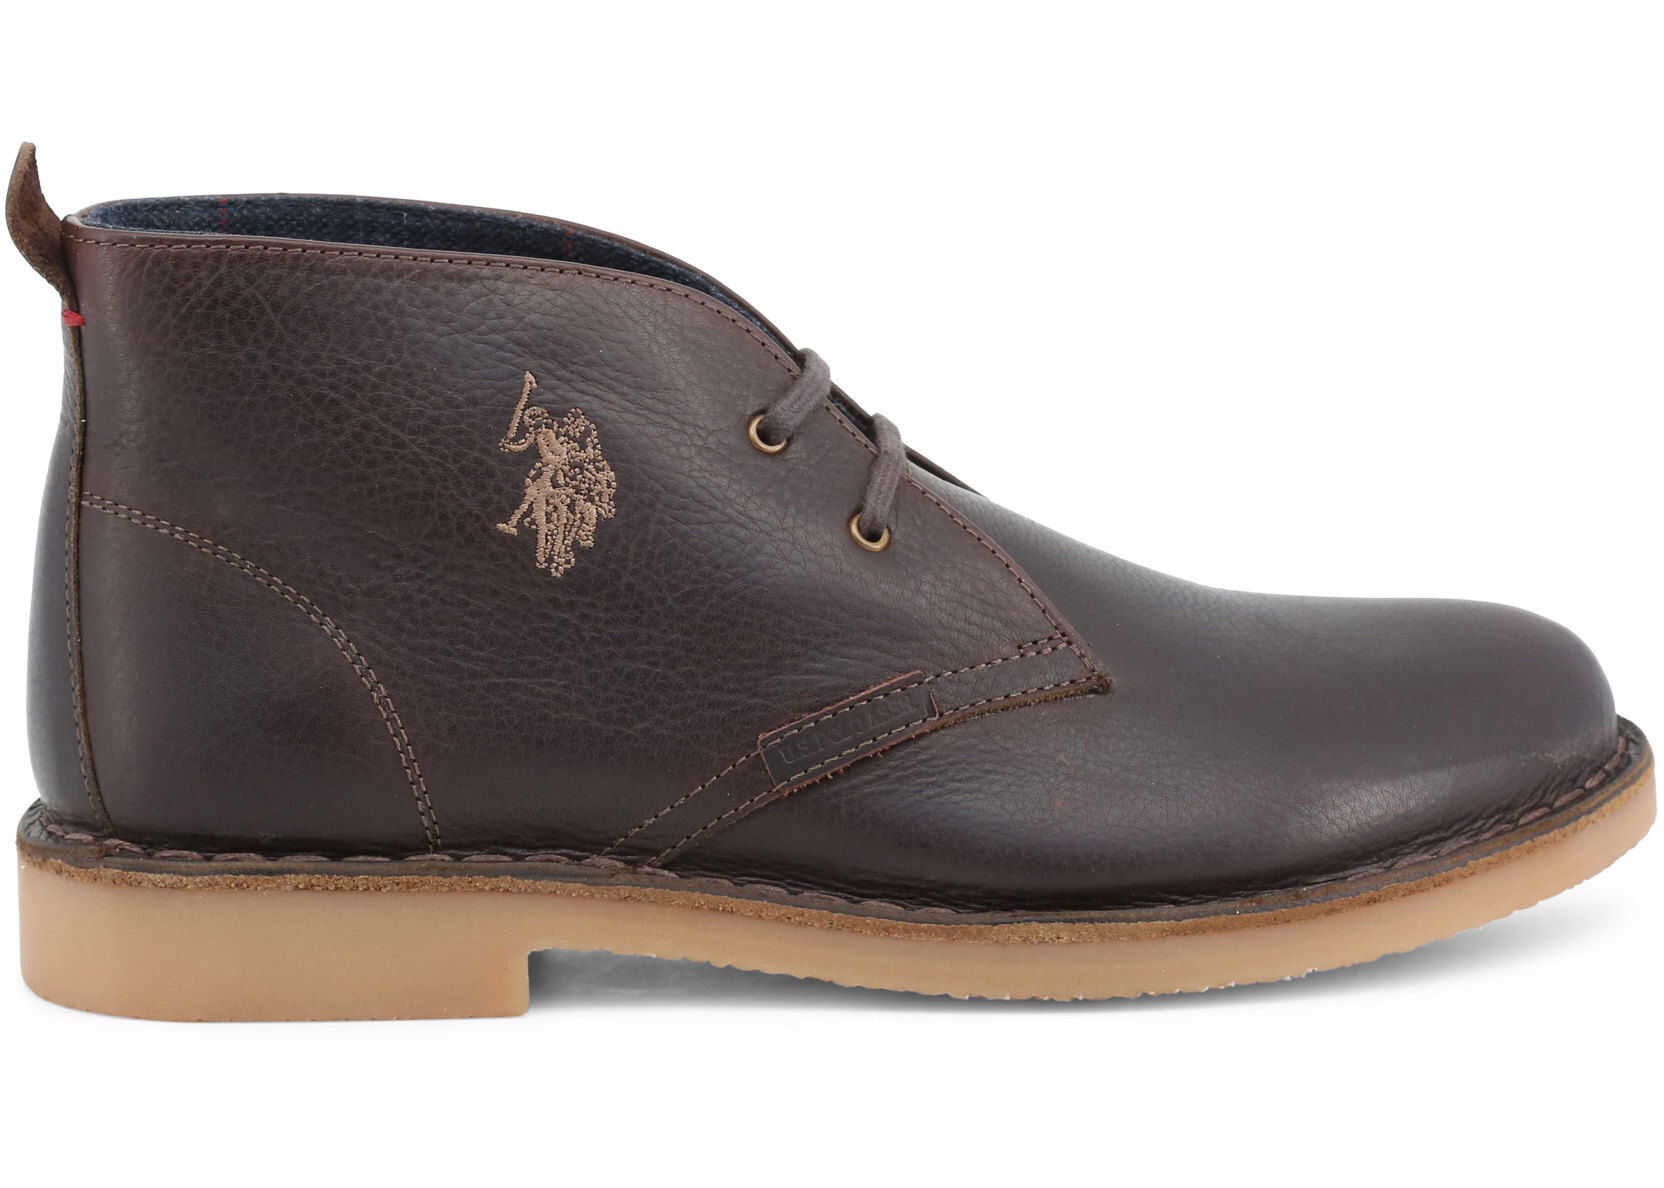 U.S. POLO ASSN. Must3119S4 Brown